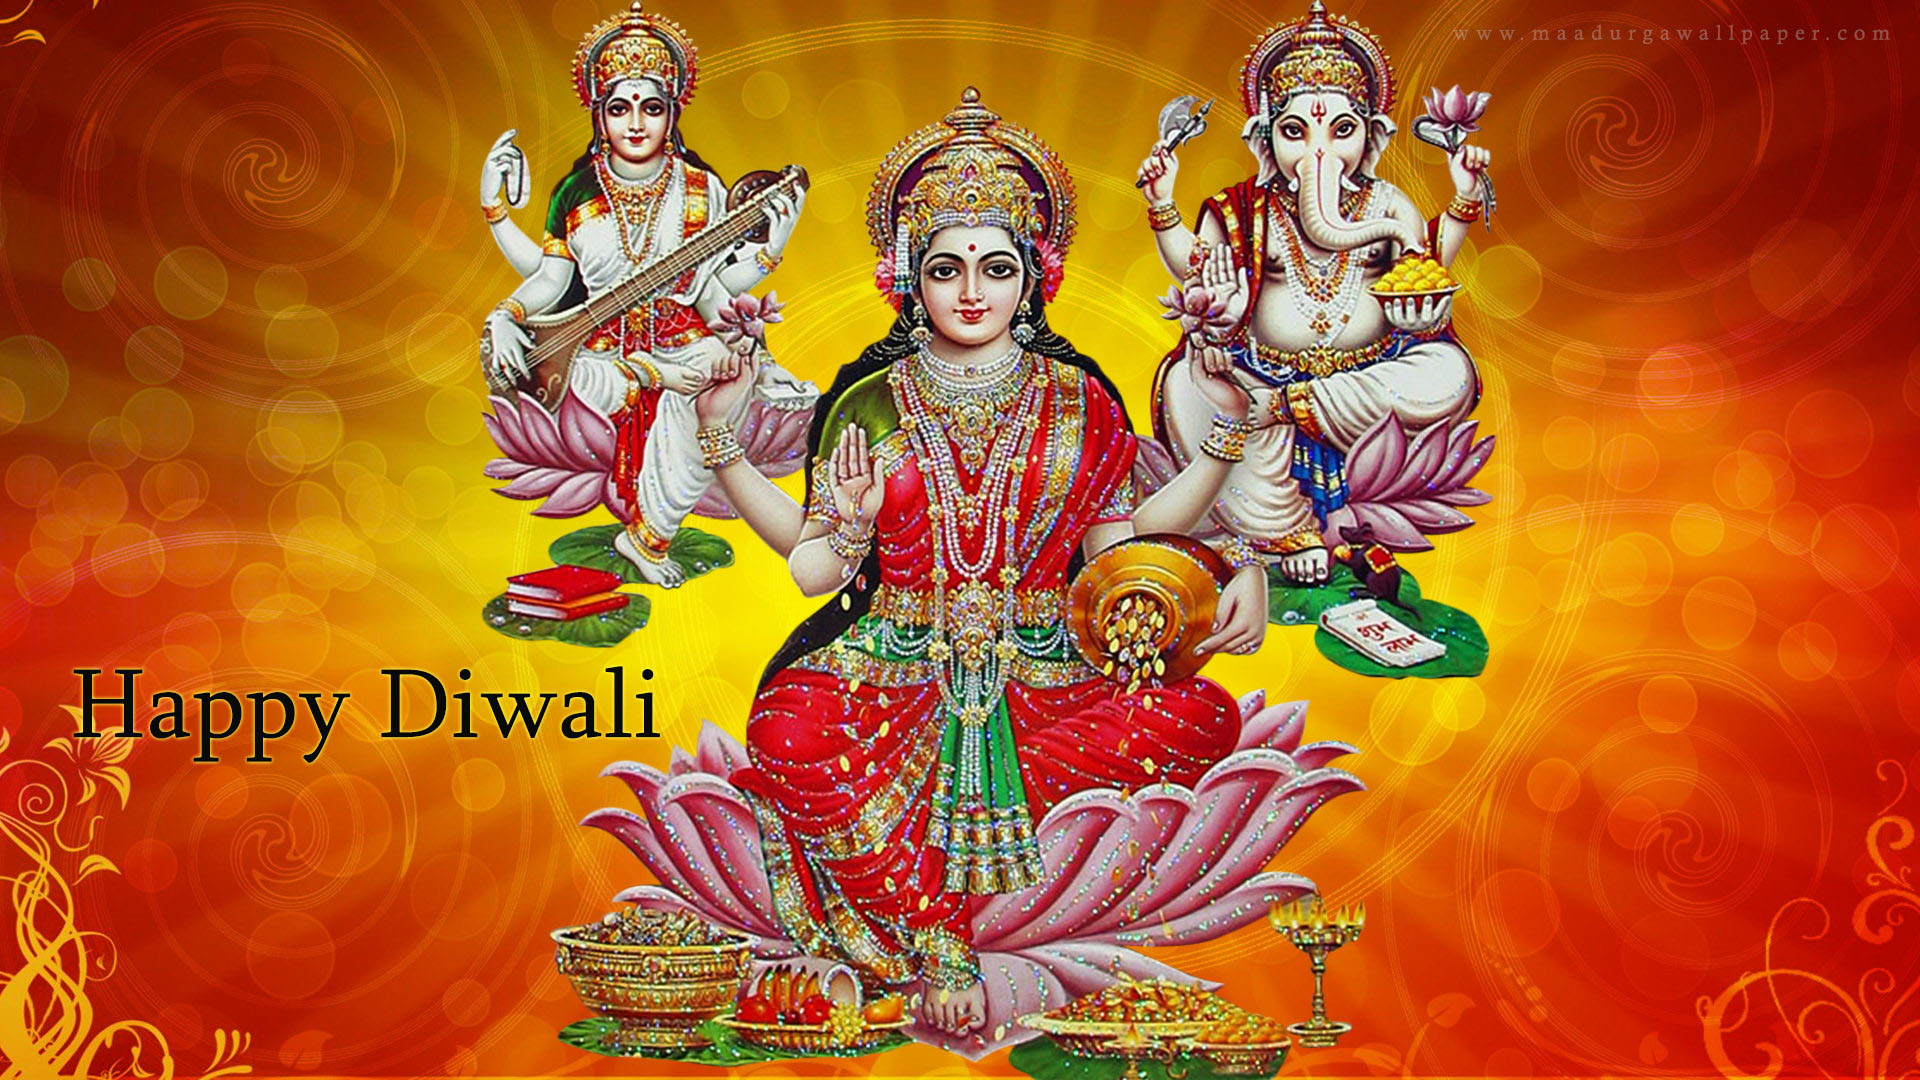 Happy DiwaliLakshmi Ganesh Saraswati Desktop Wallpapers Hd